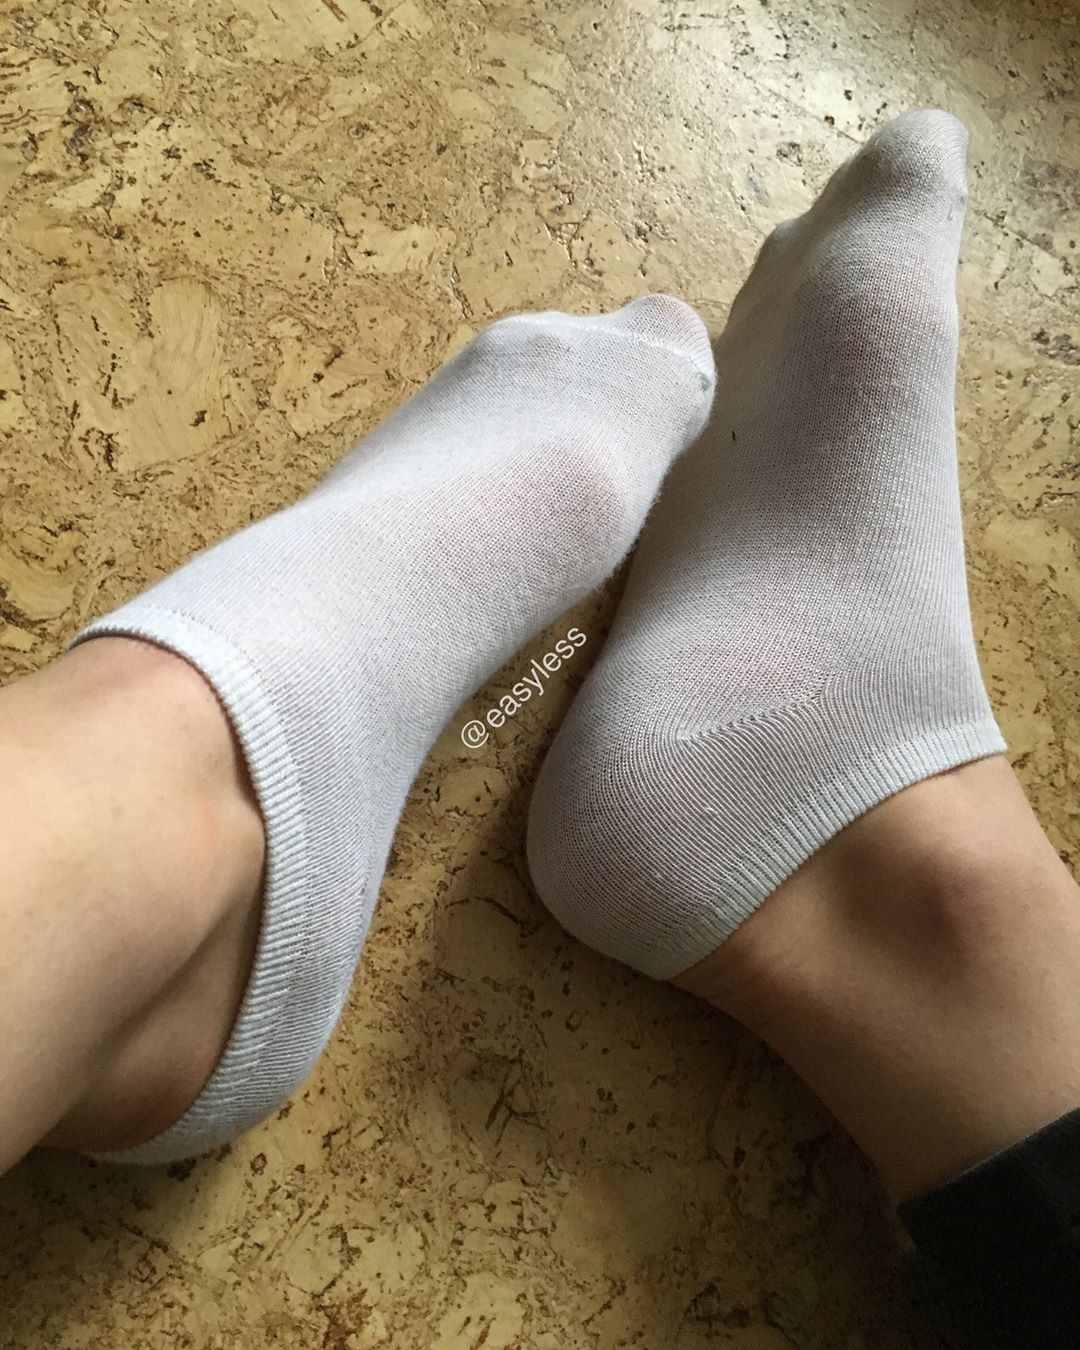 #anklesocks #whitesocks #lowcutsocks #shortsocks #ankles #socks #feet #shadowsocks #cutesocks #restingfeet #shadows Cute socks | Cool socks | Sock shoes | Crazy socks | My socks | Happy socks | Winter | Girl | High | Leggings | Funny | Fuzzy | Pattern | Forever 21 | Crew | Ideas | Fall Outfits | Korean | Urban Outfitters | Kawaii | Tumblr | Lace | DIY | Knee | Long | Quotes |